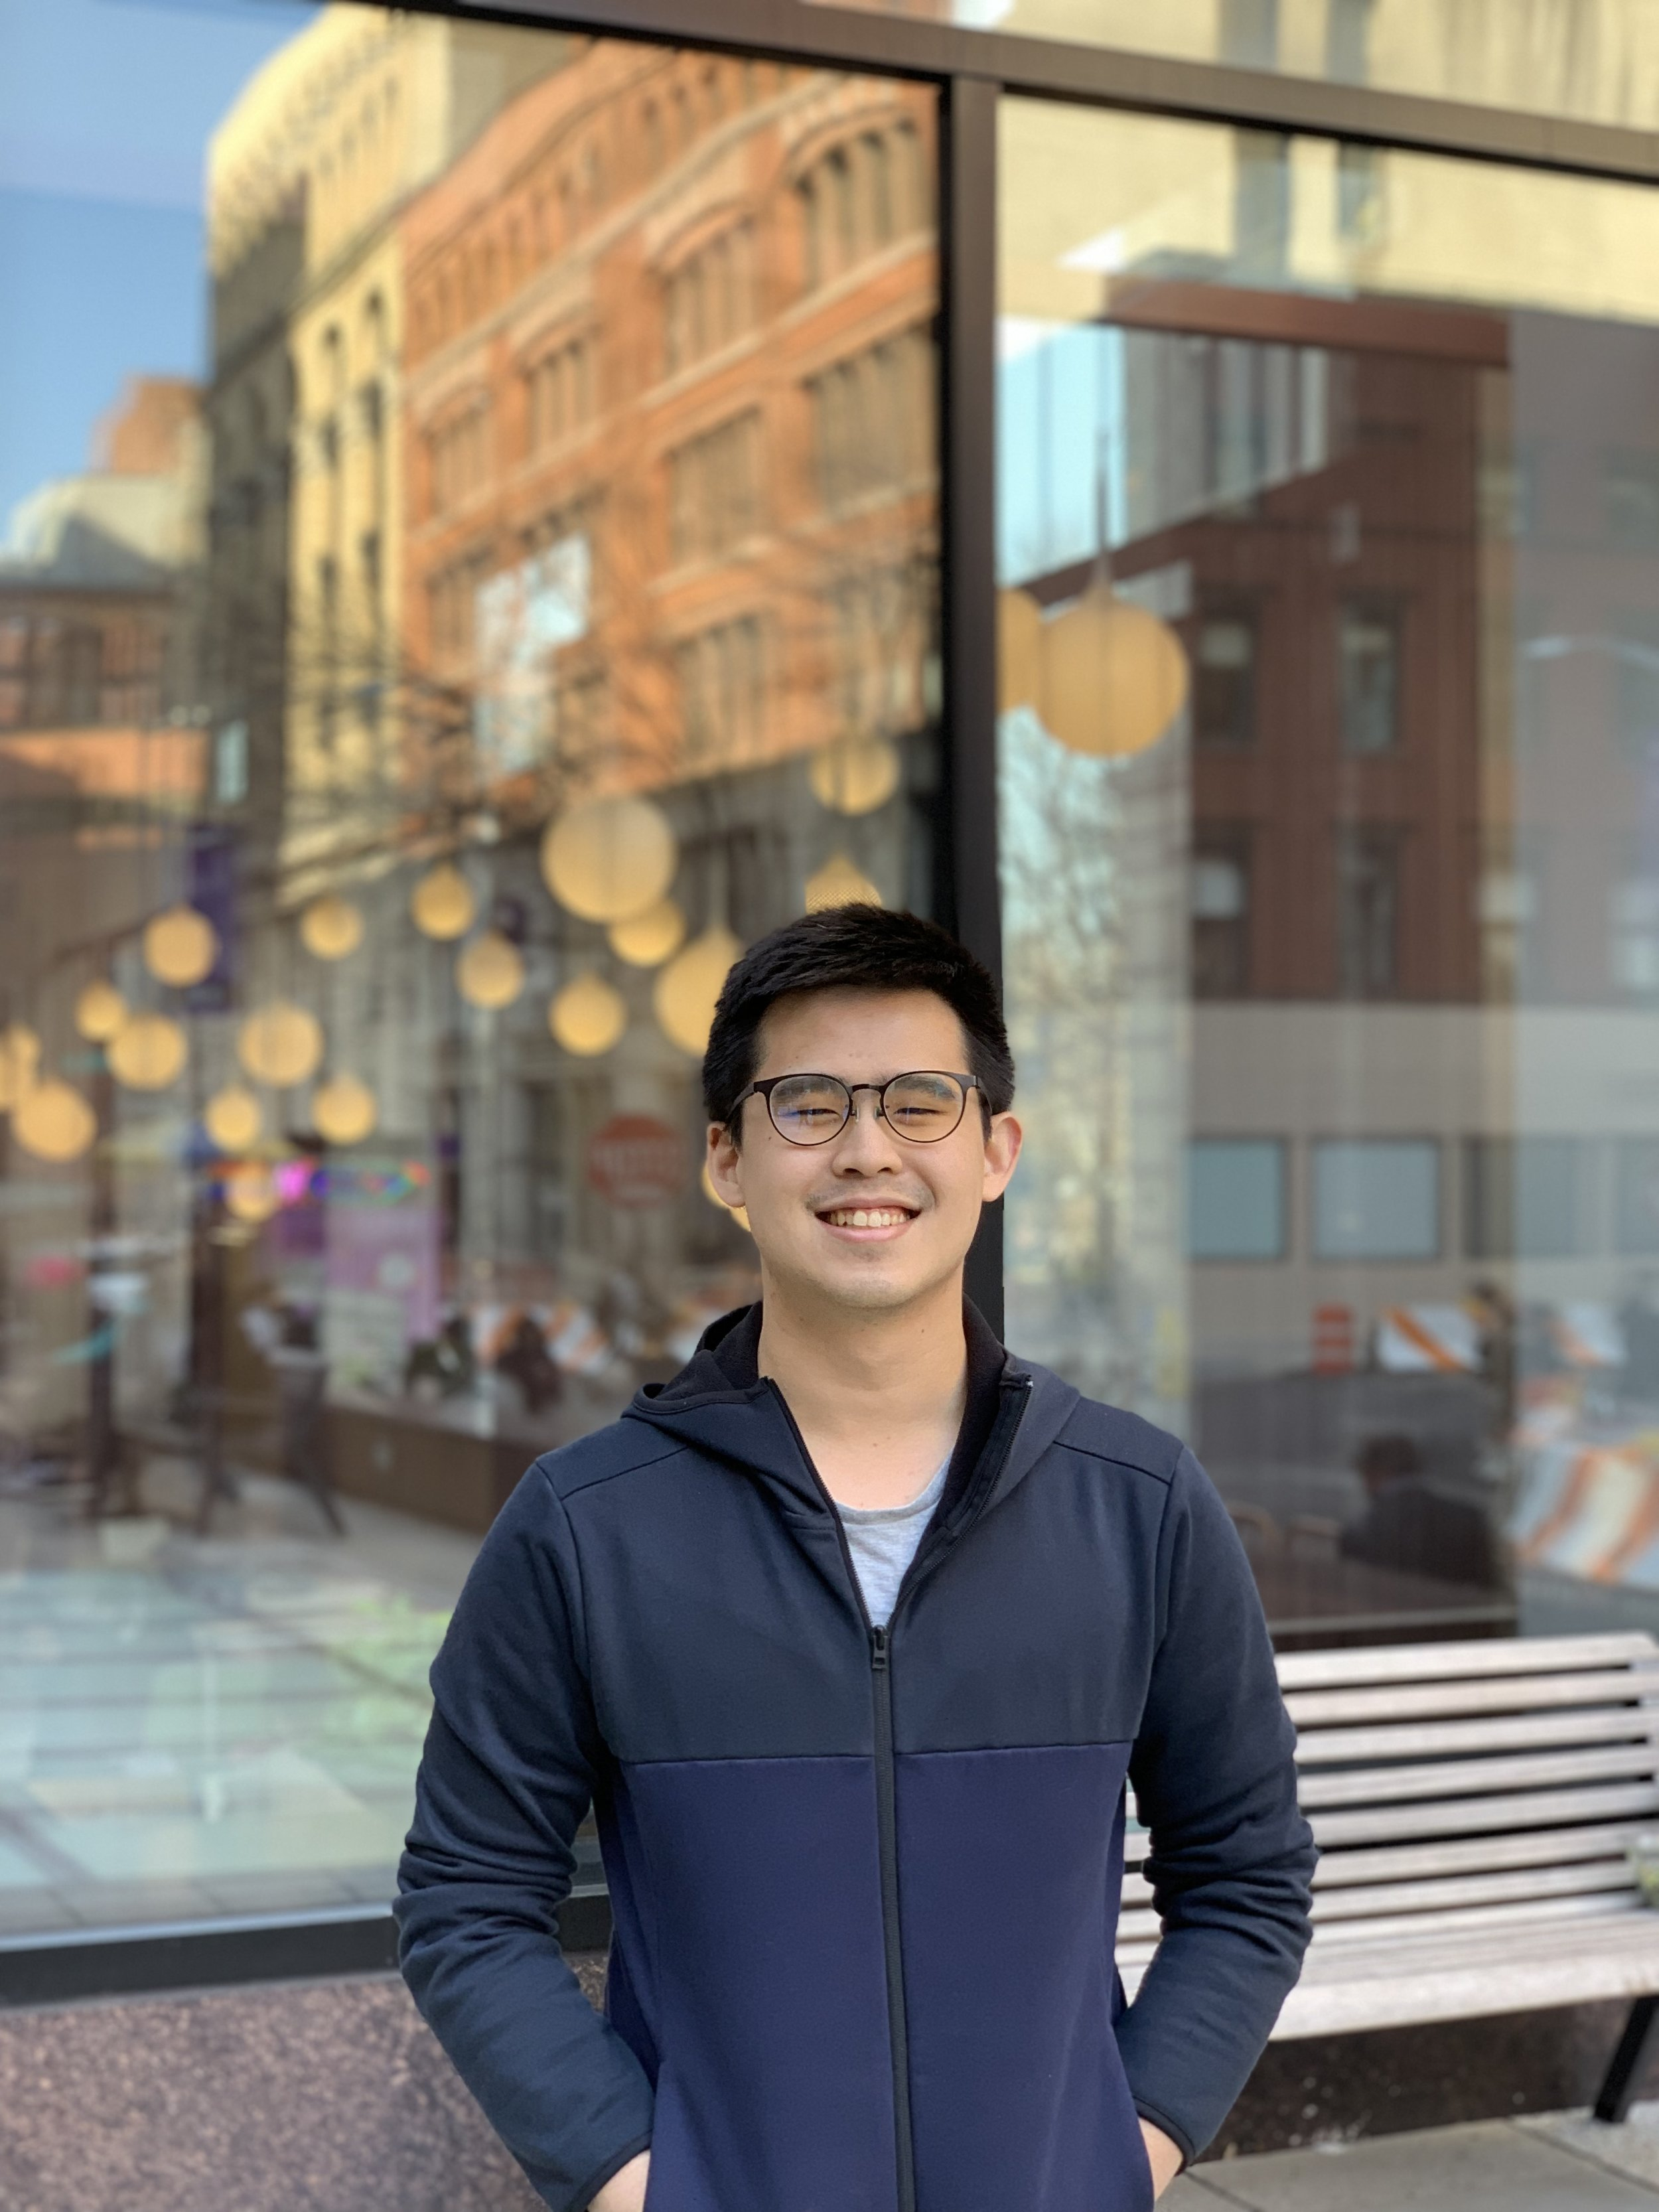 Joshua Ling    Head of Portfolios   Joshua is from Singapore and is pursuing a major in Finance and Statistics. He is a diehard San Antonio Spurs supporter. In his free time, you will find him binge-watching sitcoms or sports debate shows.